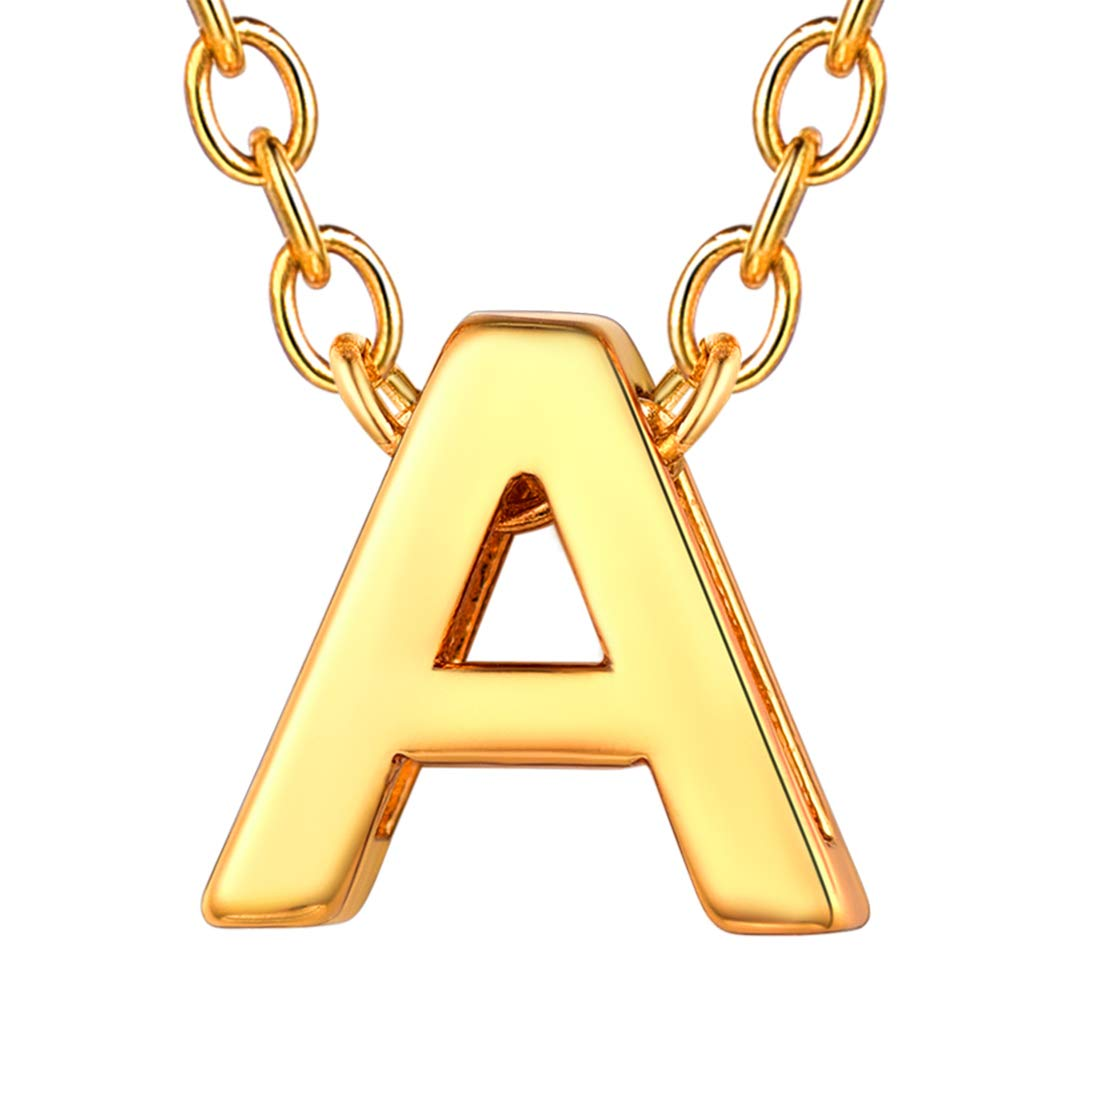 38238ae6b U7 Unique Tiny Initial Necklaces Women Girls Choker Alphabet Letter Jewelry  18K Gold/Stainless Steel/Rose Gold Personalized Monogram Block Name Necklace